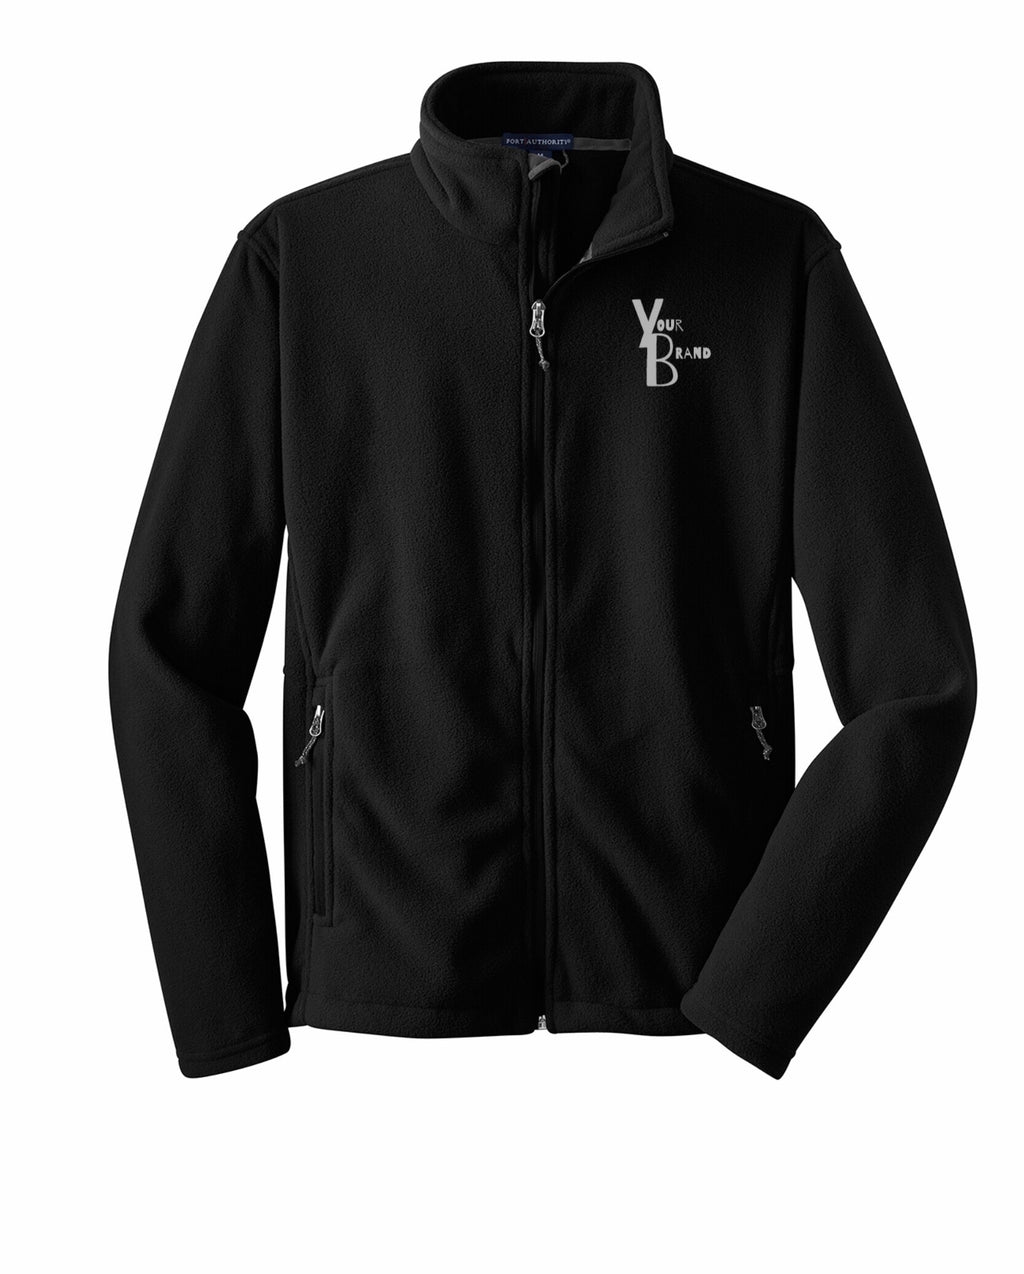 Youth Just the Brand Fleece Jacket